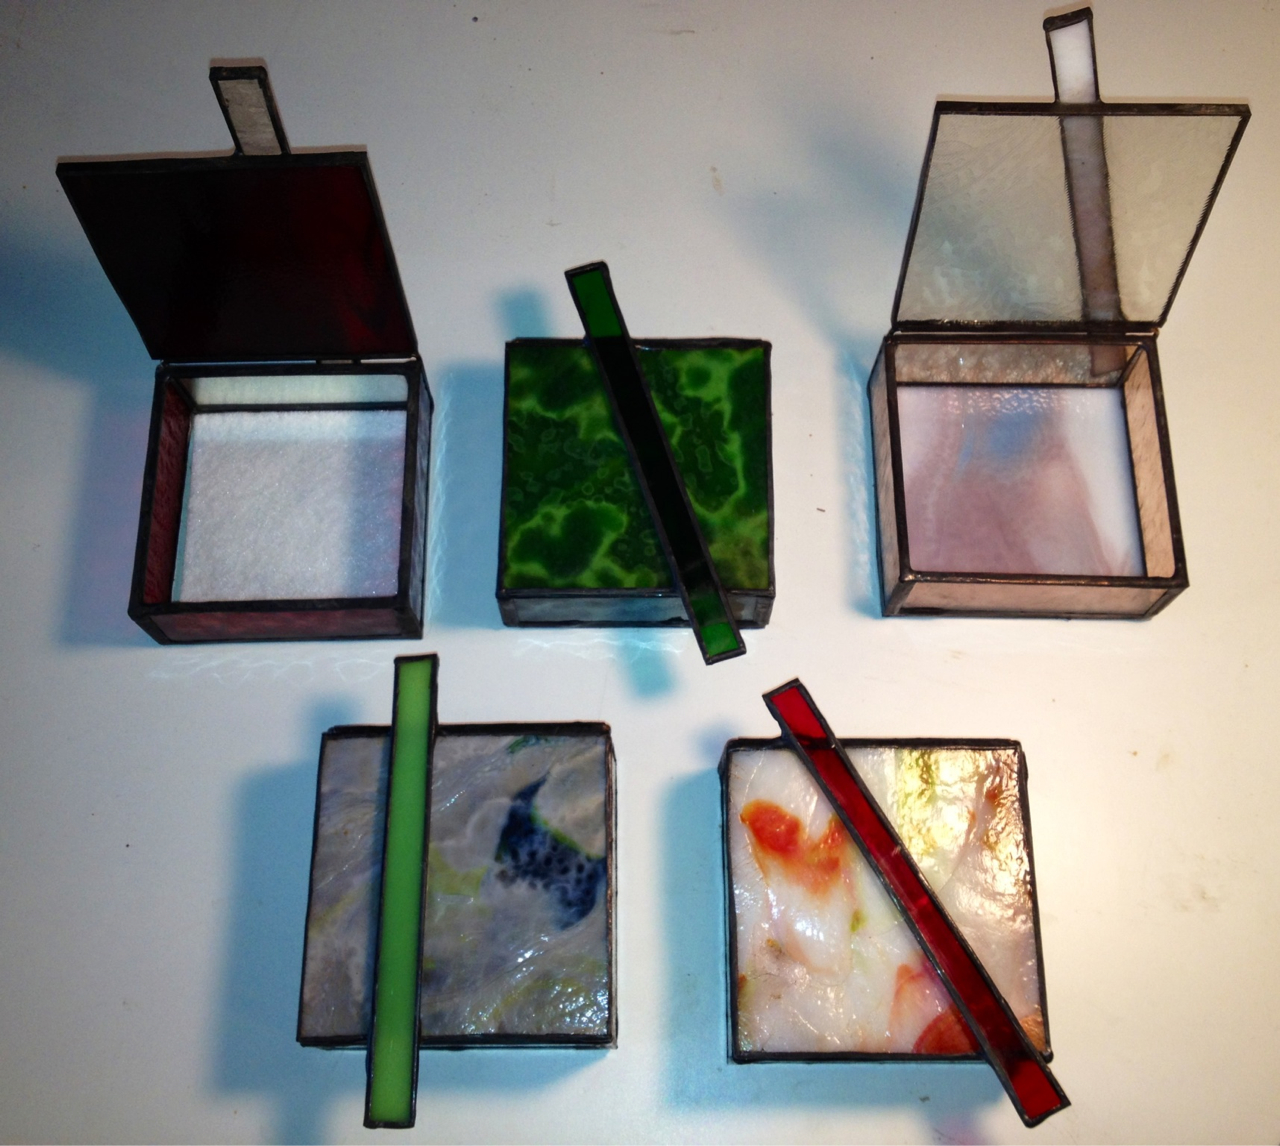 Thank you to all who came out to see my new work at shows the last two weekends. Your support is appreciated. My newest line of boxes is all about form and function as I'm using a glass bar as both the handle and the rest for the top. These will soon be up on etsy but order yours today. Starting at 40 dollars they make a perfect gift!